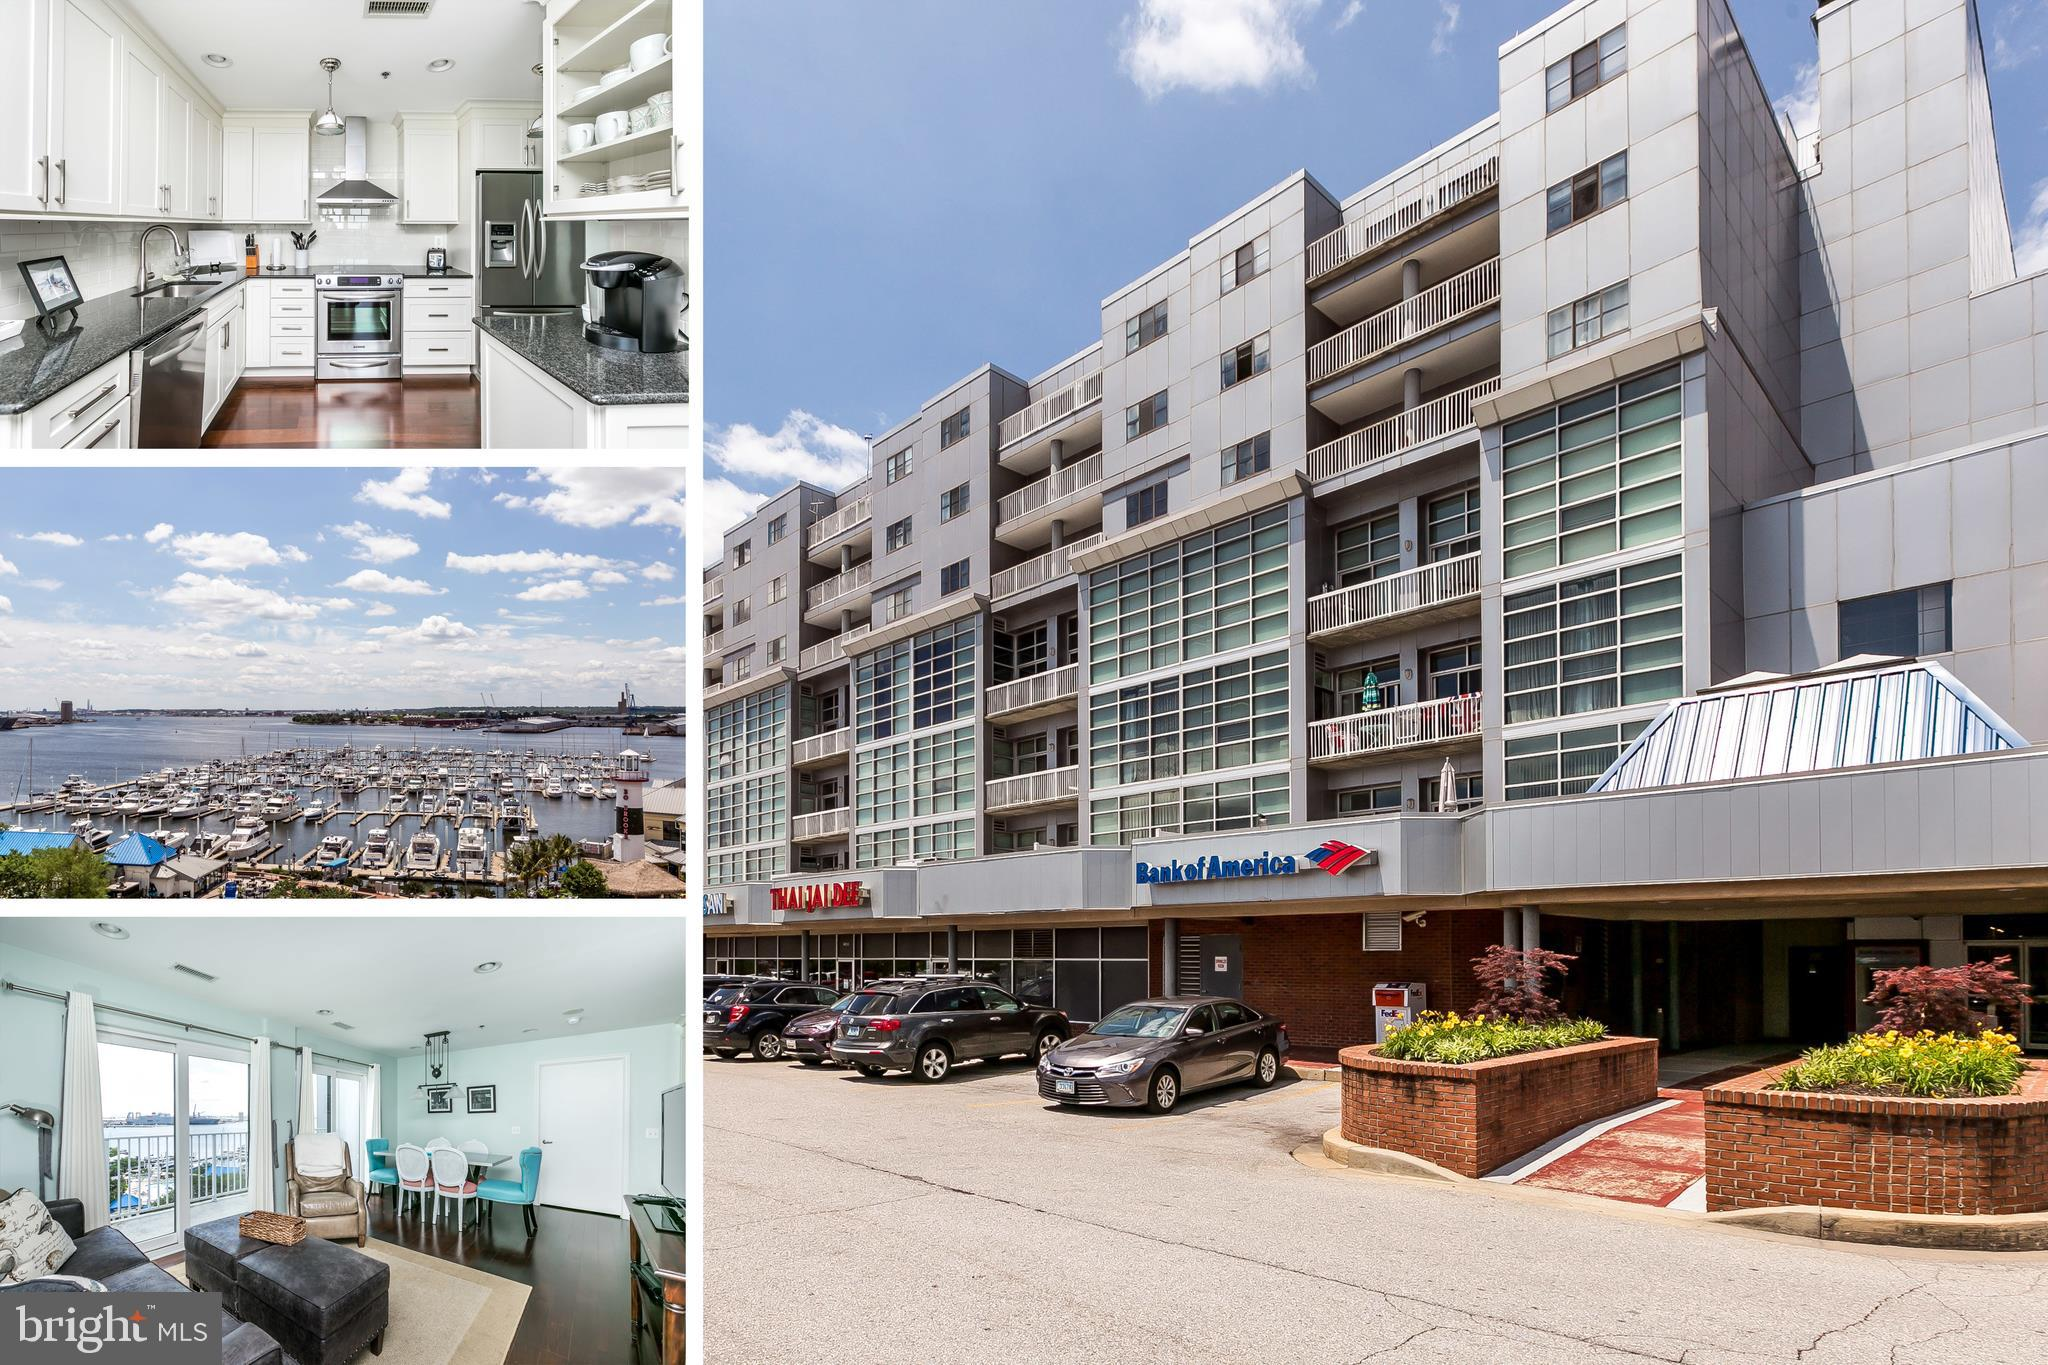 Rarely Available In Lighthouse Landing - Top Floor 2 Bedroom 2 Bath Unit w/ Stunning Water & City Views! Updated Kitchen & Baths. Wood Floors Throughout. Garage Parking, Building Security & Fitness Center. Just Steps From The Waterfront, Restaurants & Shopping. Easy Commuter Access To 95, 83, Hopkins & Downtown - This One Will Not Last!